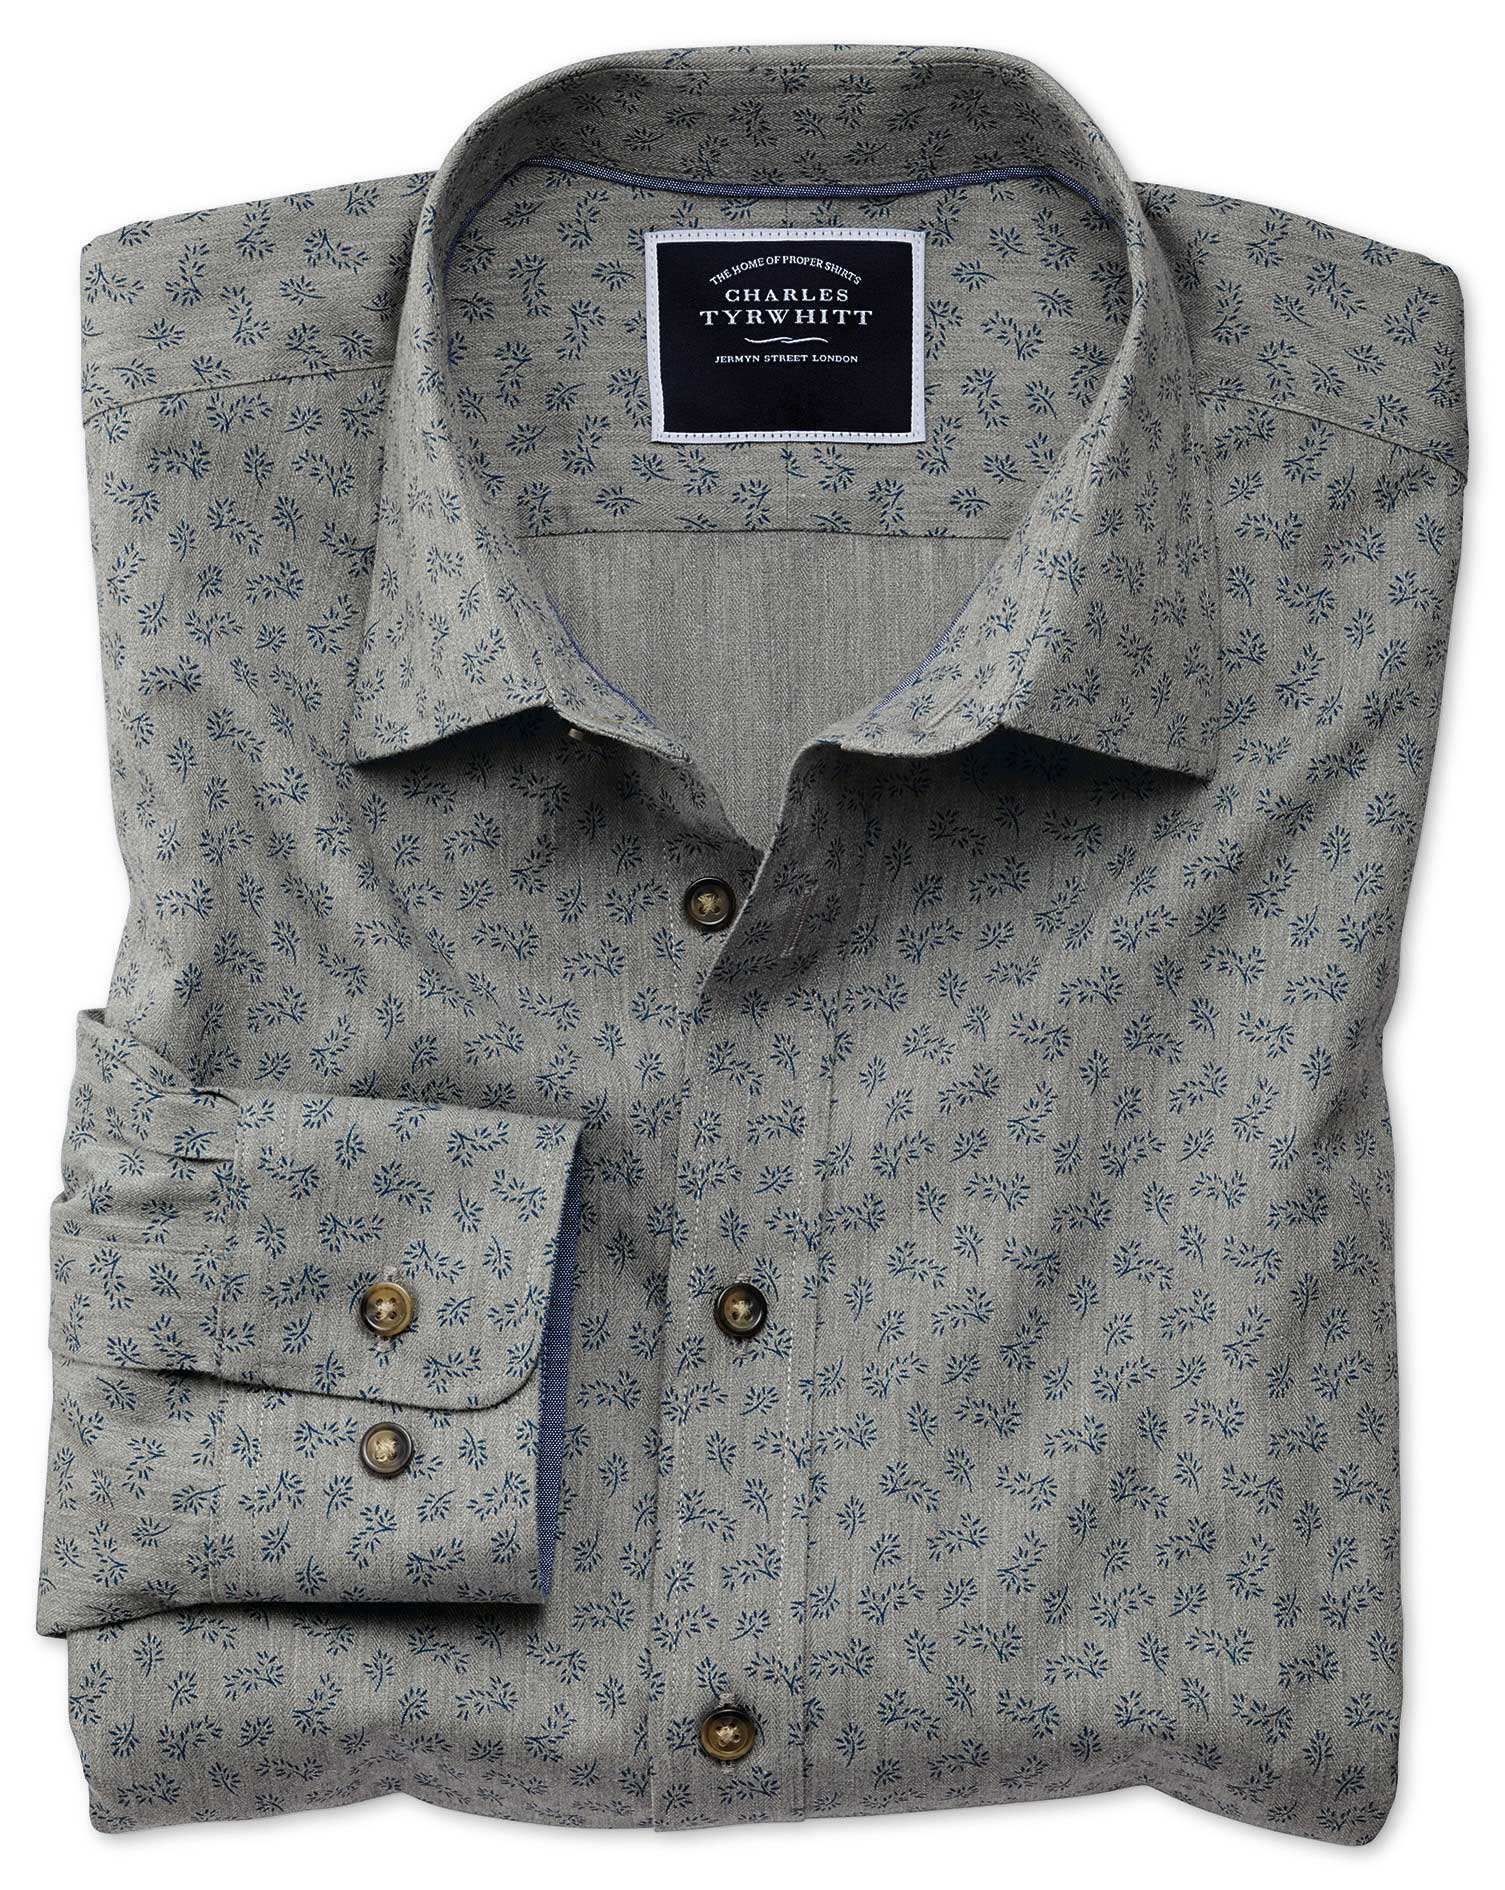 slim fit grey floral print cotton casual shirt single cuff size xs by charles tyrwhitt